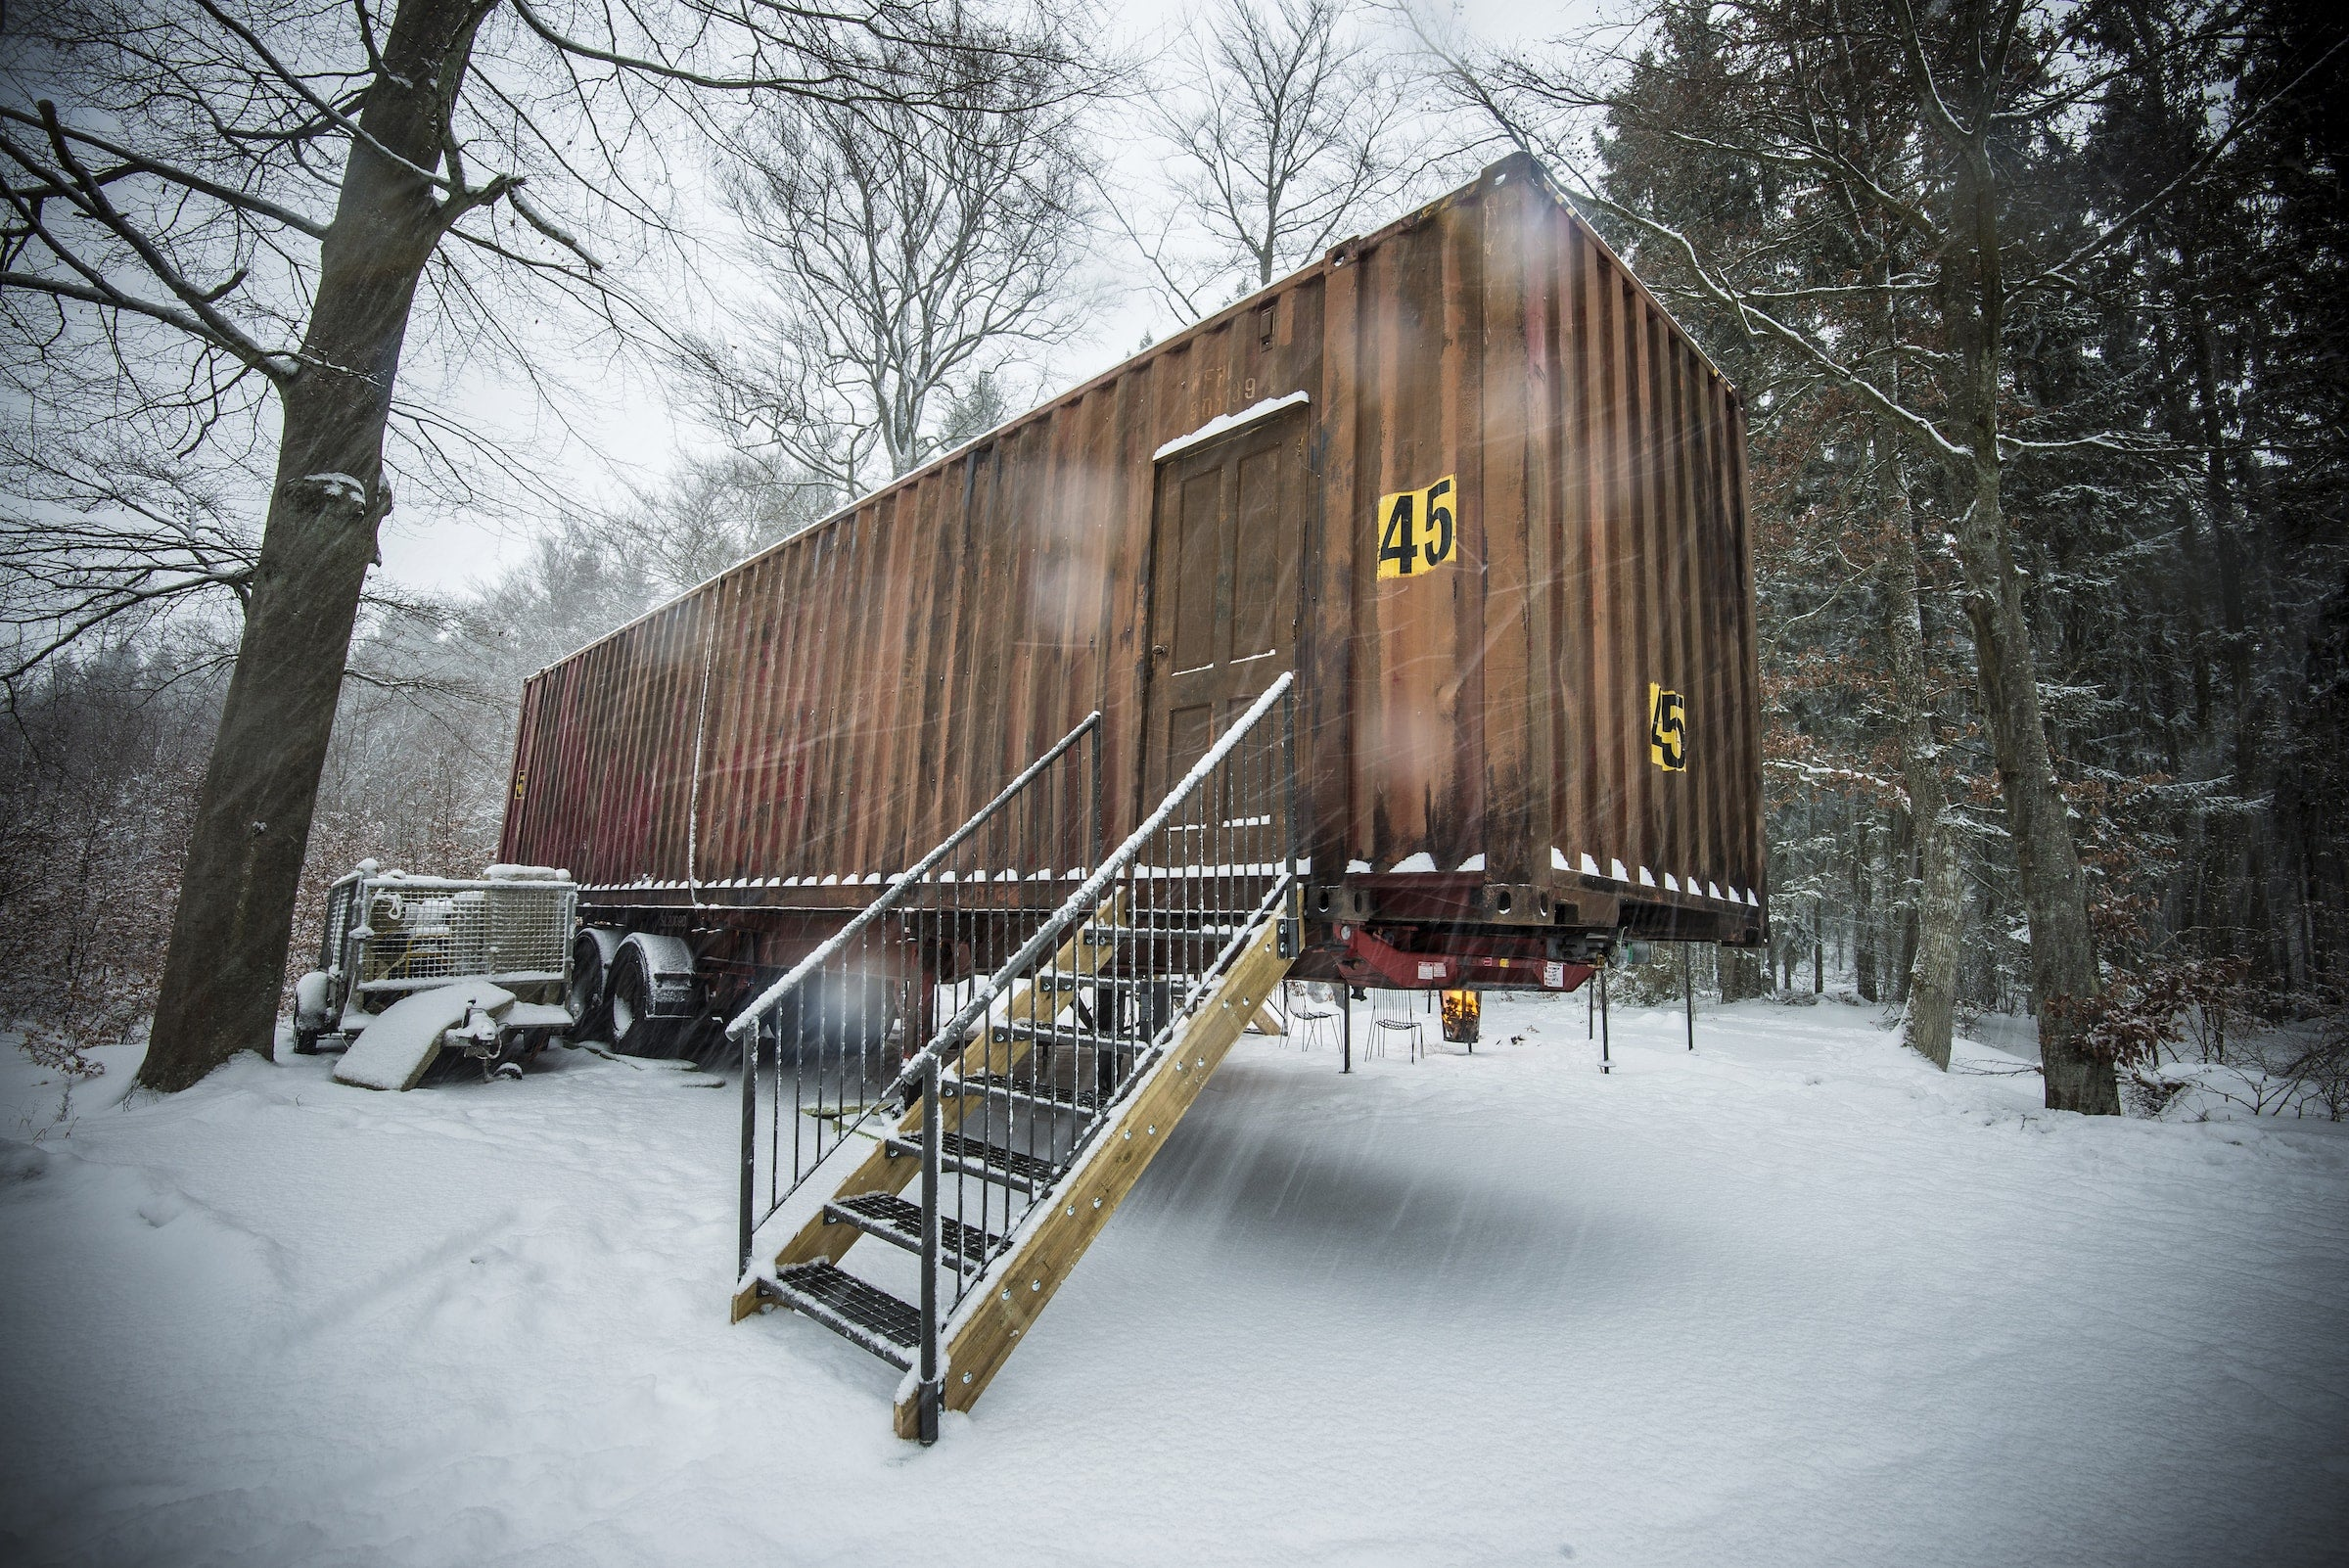 Elyx Trailer in the woods under the snow